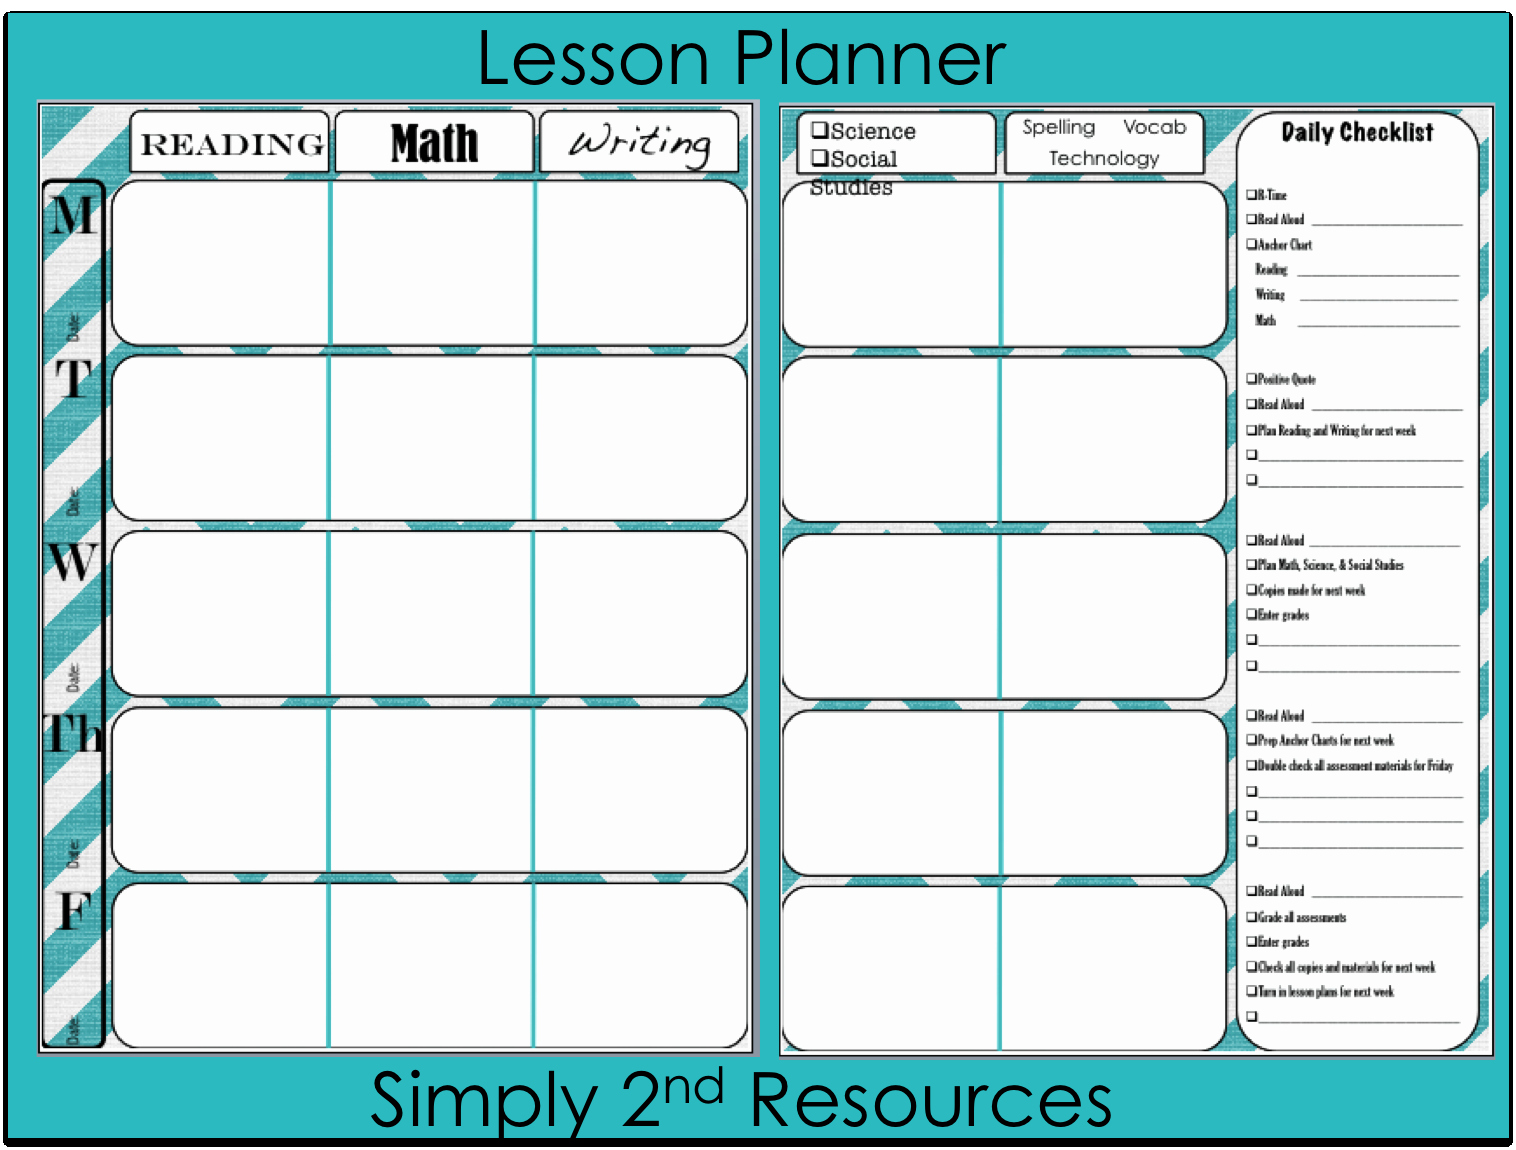 Teachers Planning Book Template Luxury Teacher Plan Book Printable Printable 360 Degree